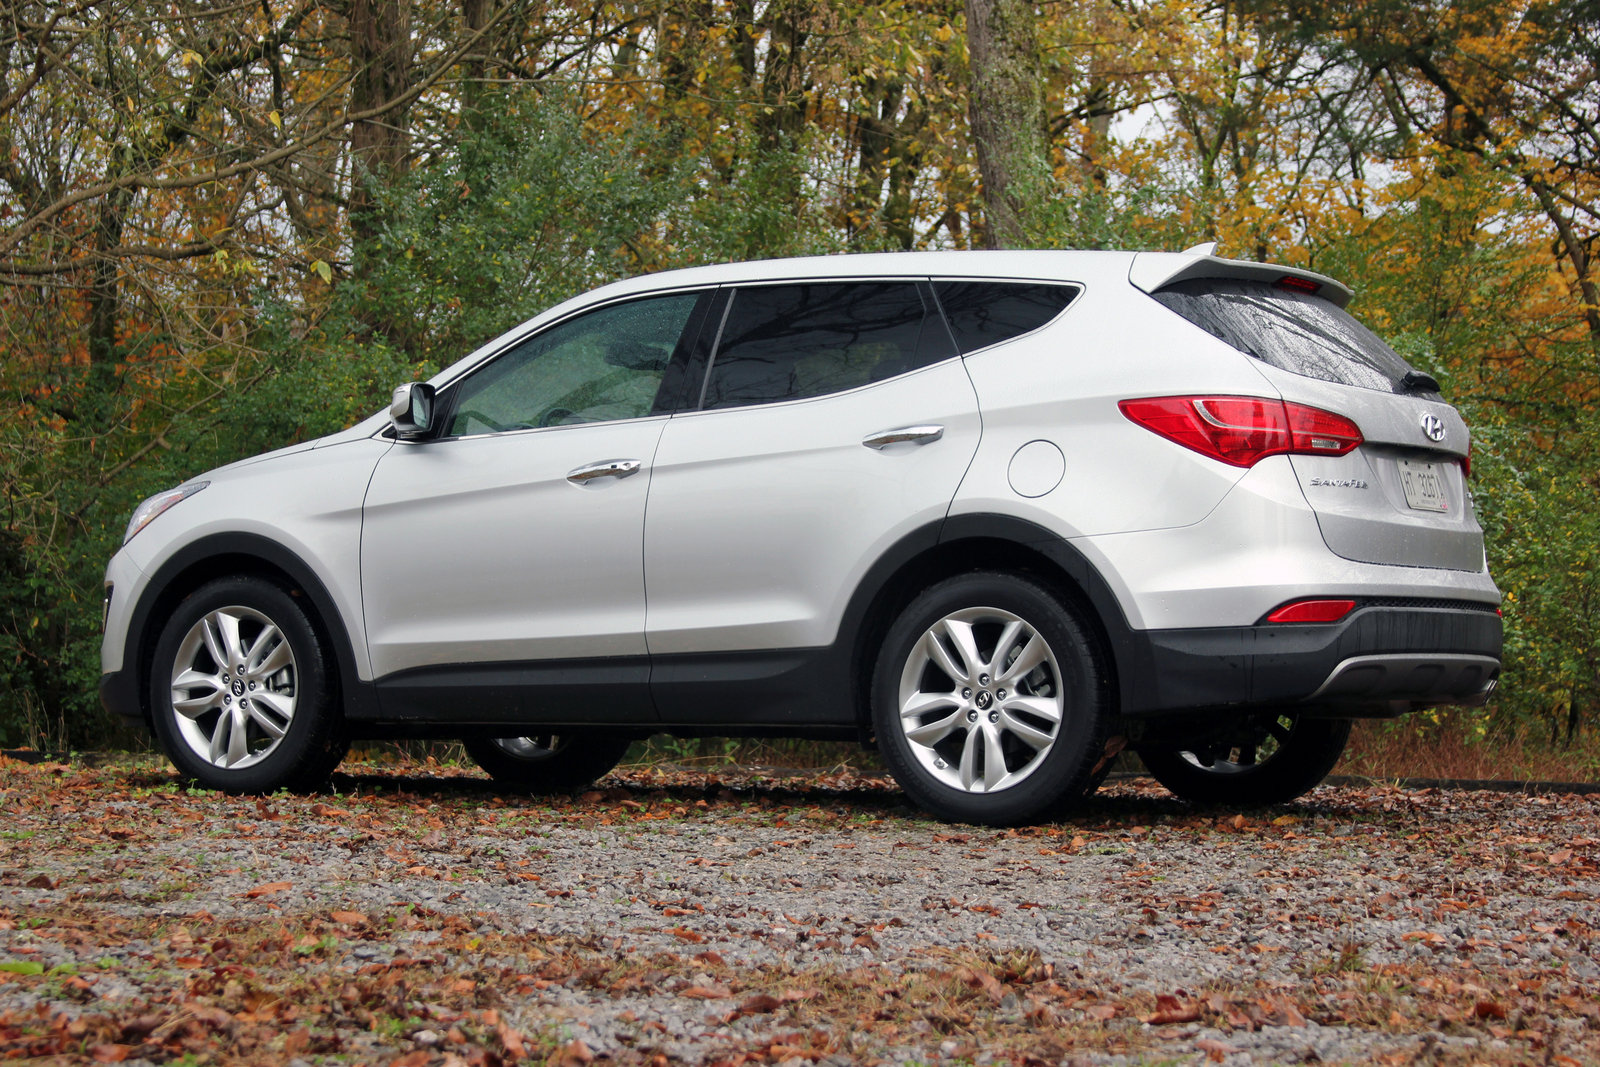 2014 hyundai santa fe sport driven picture 574540 car review top speed. Black Bedroom Furniture Sets. Home Design Ideas